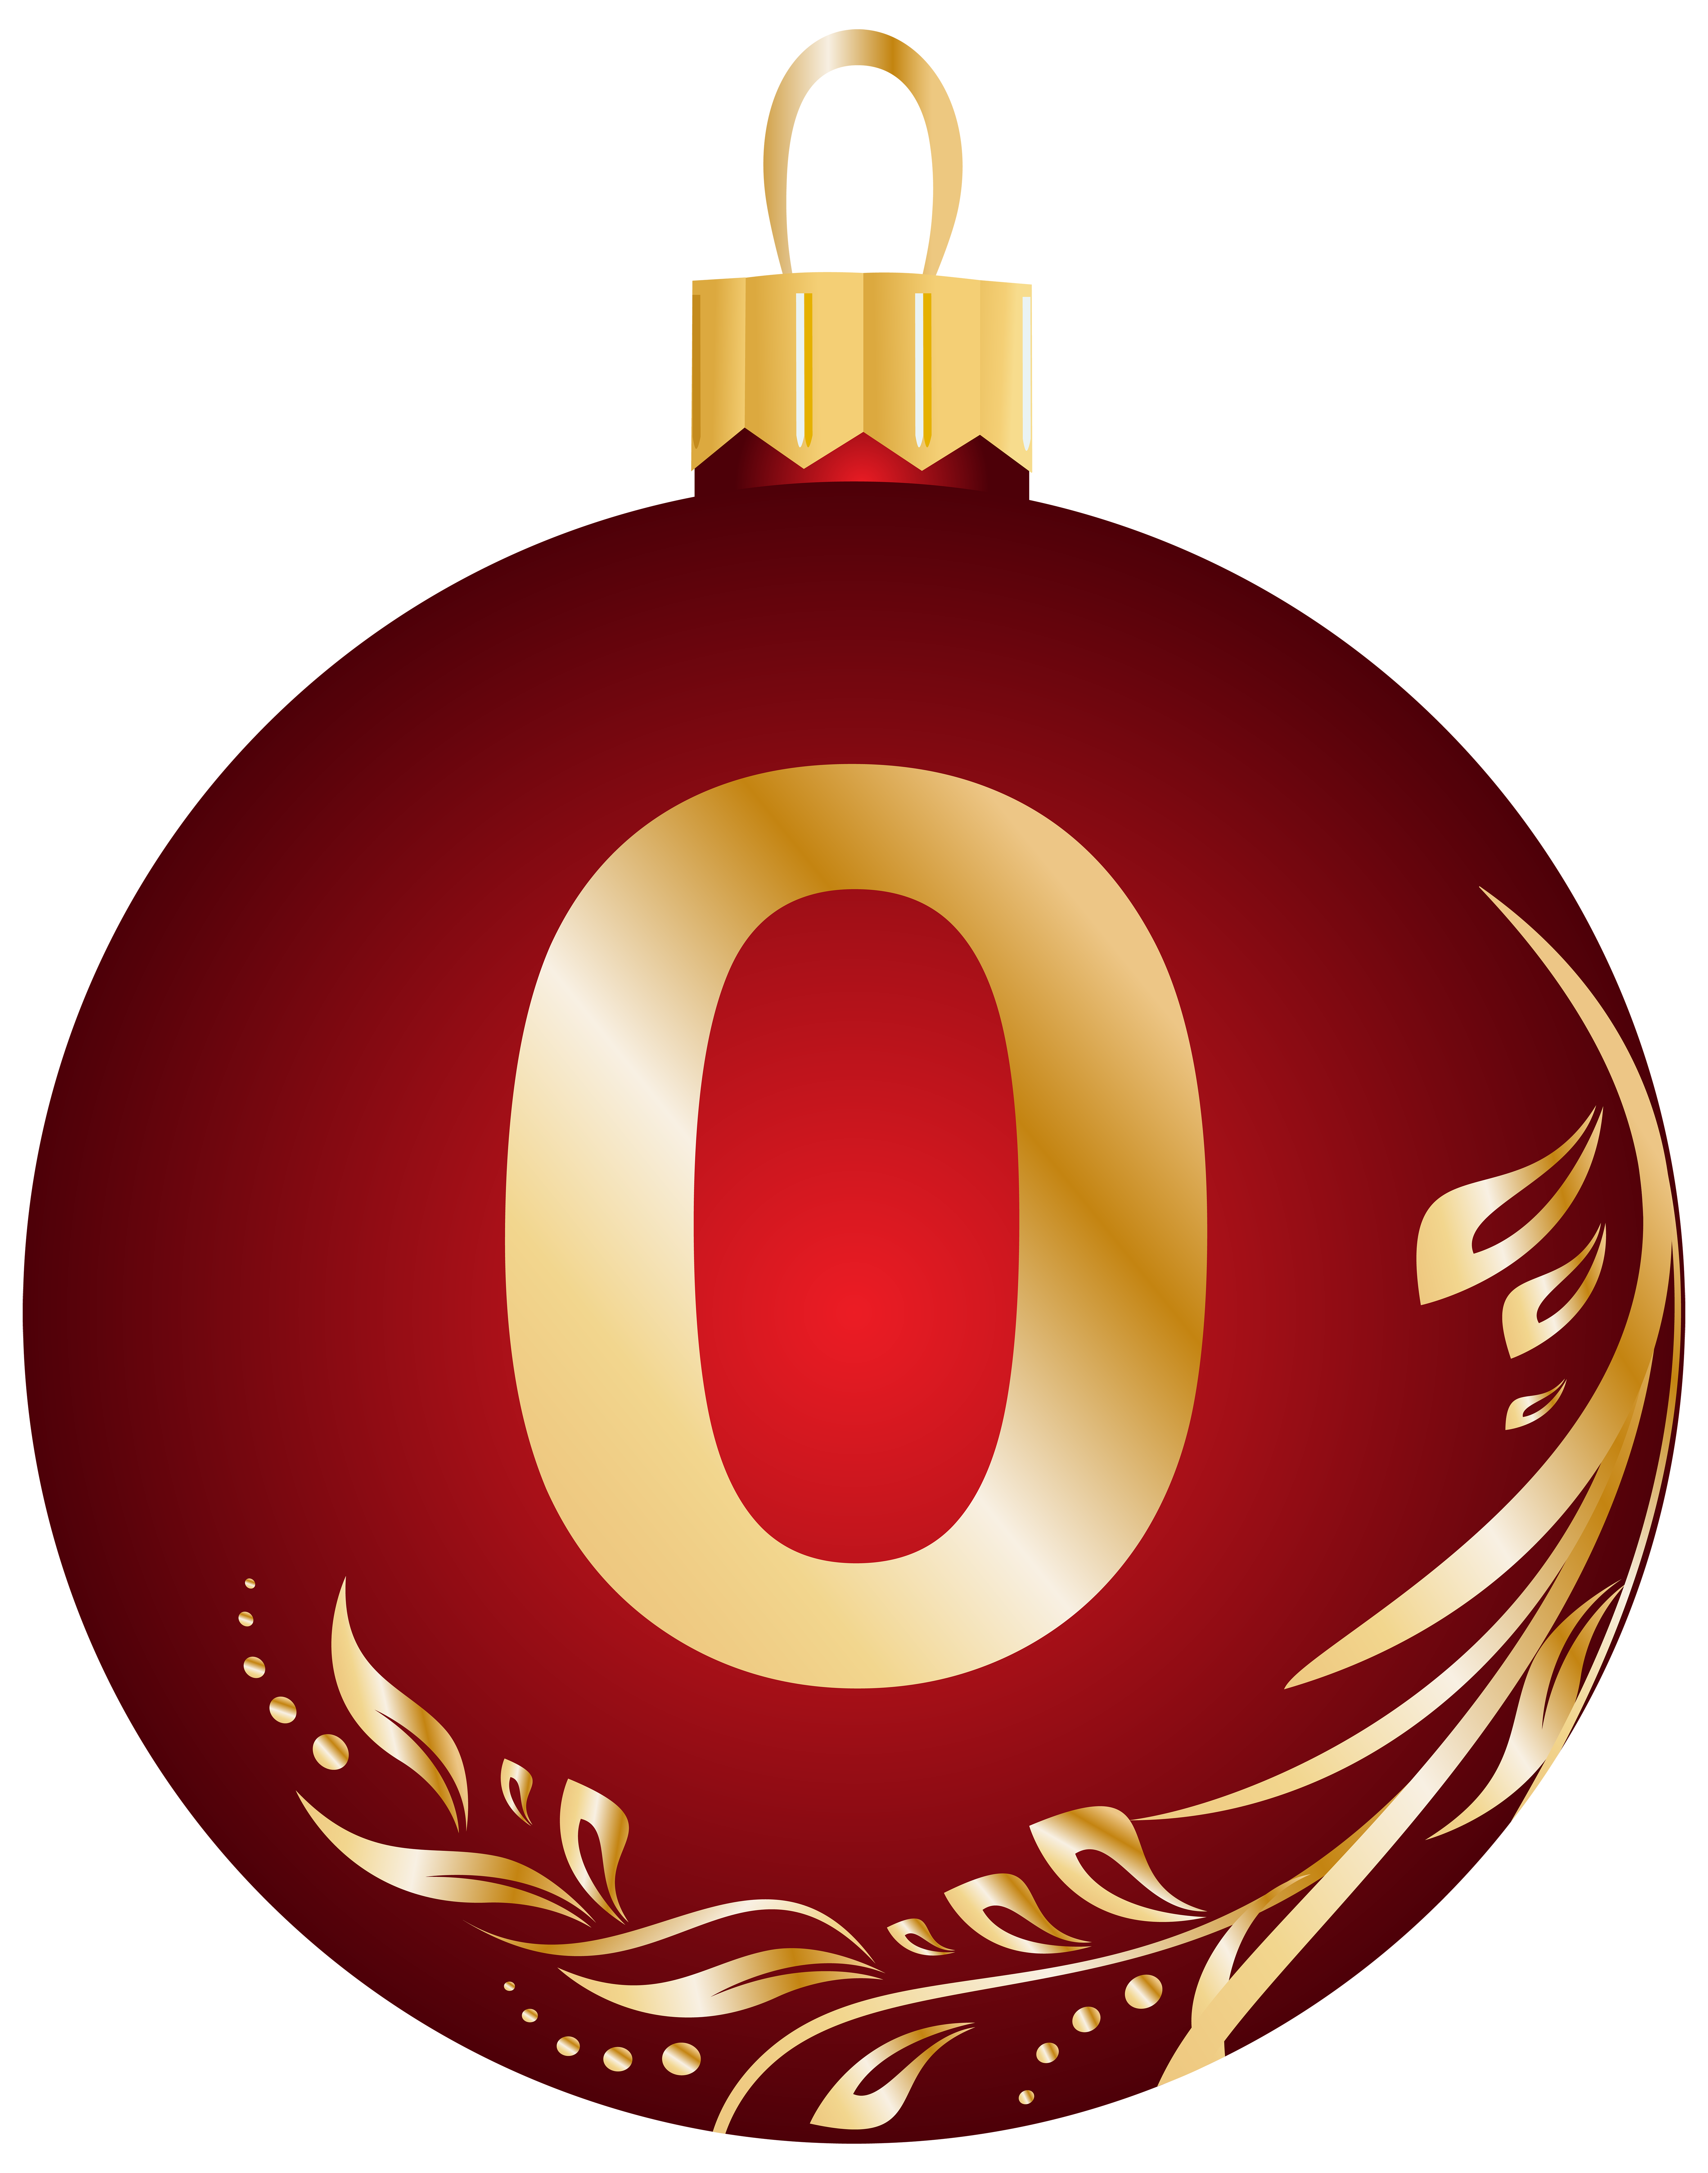 Christmas numbers clipart jpg free download Christmas Ball Clipart at GetDrawings.com | Free for personal use ... jpg free download